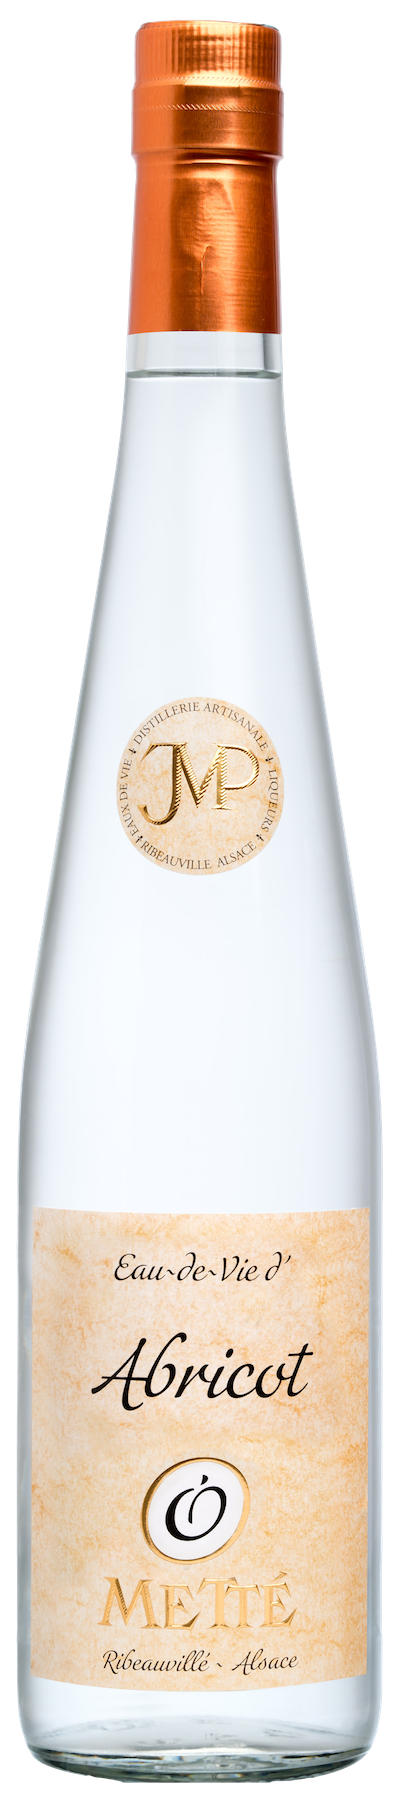 A long white bottle with a label written Abricot Mette